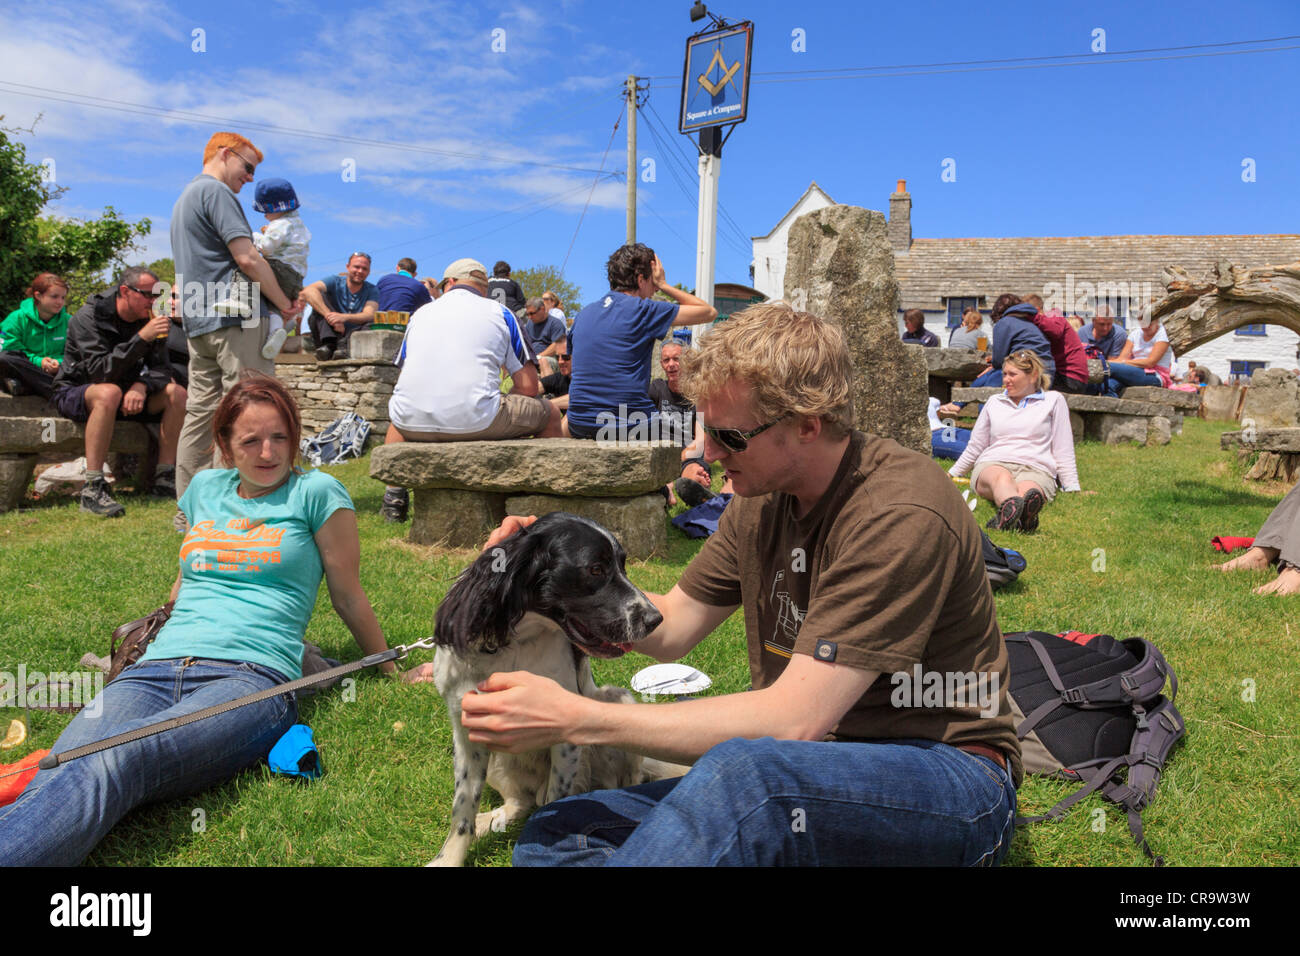 Scene With People Sitting In Busy Beer Garden Of The